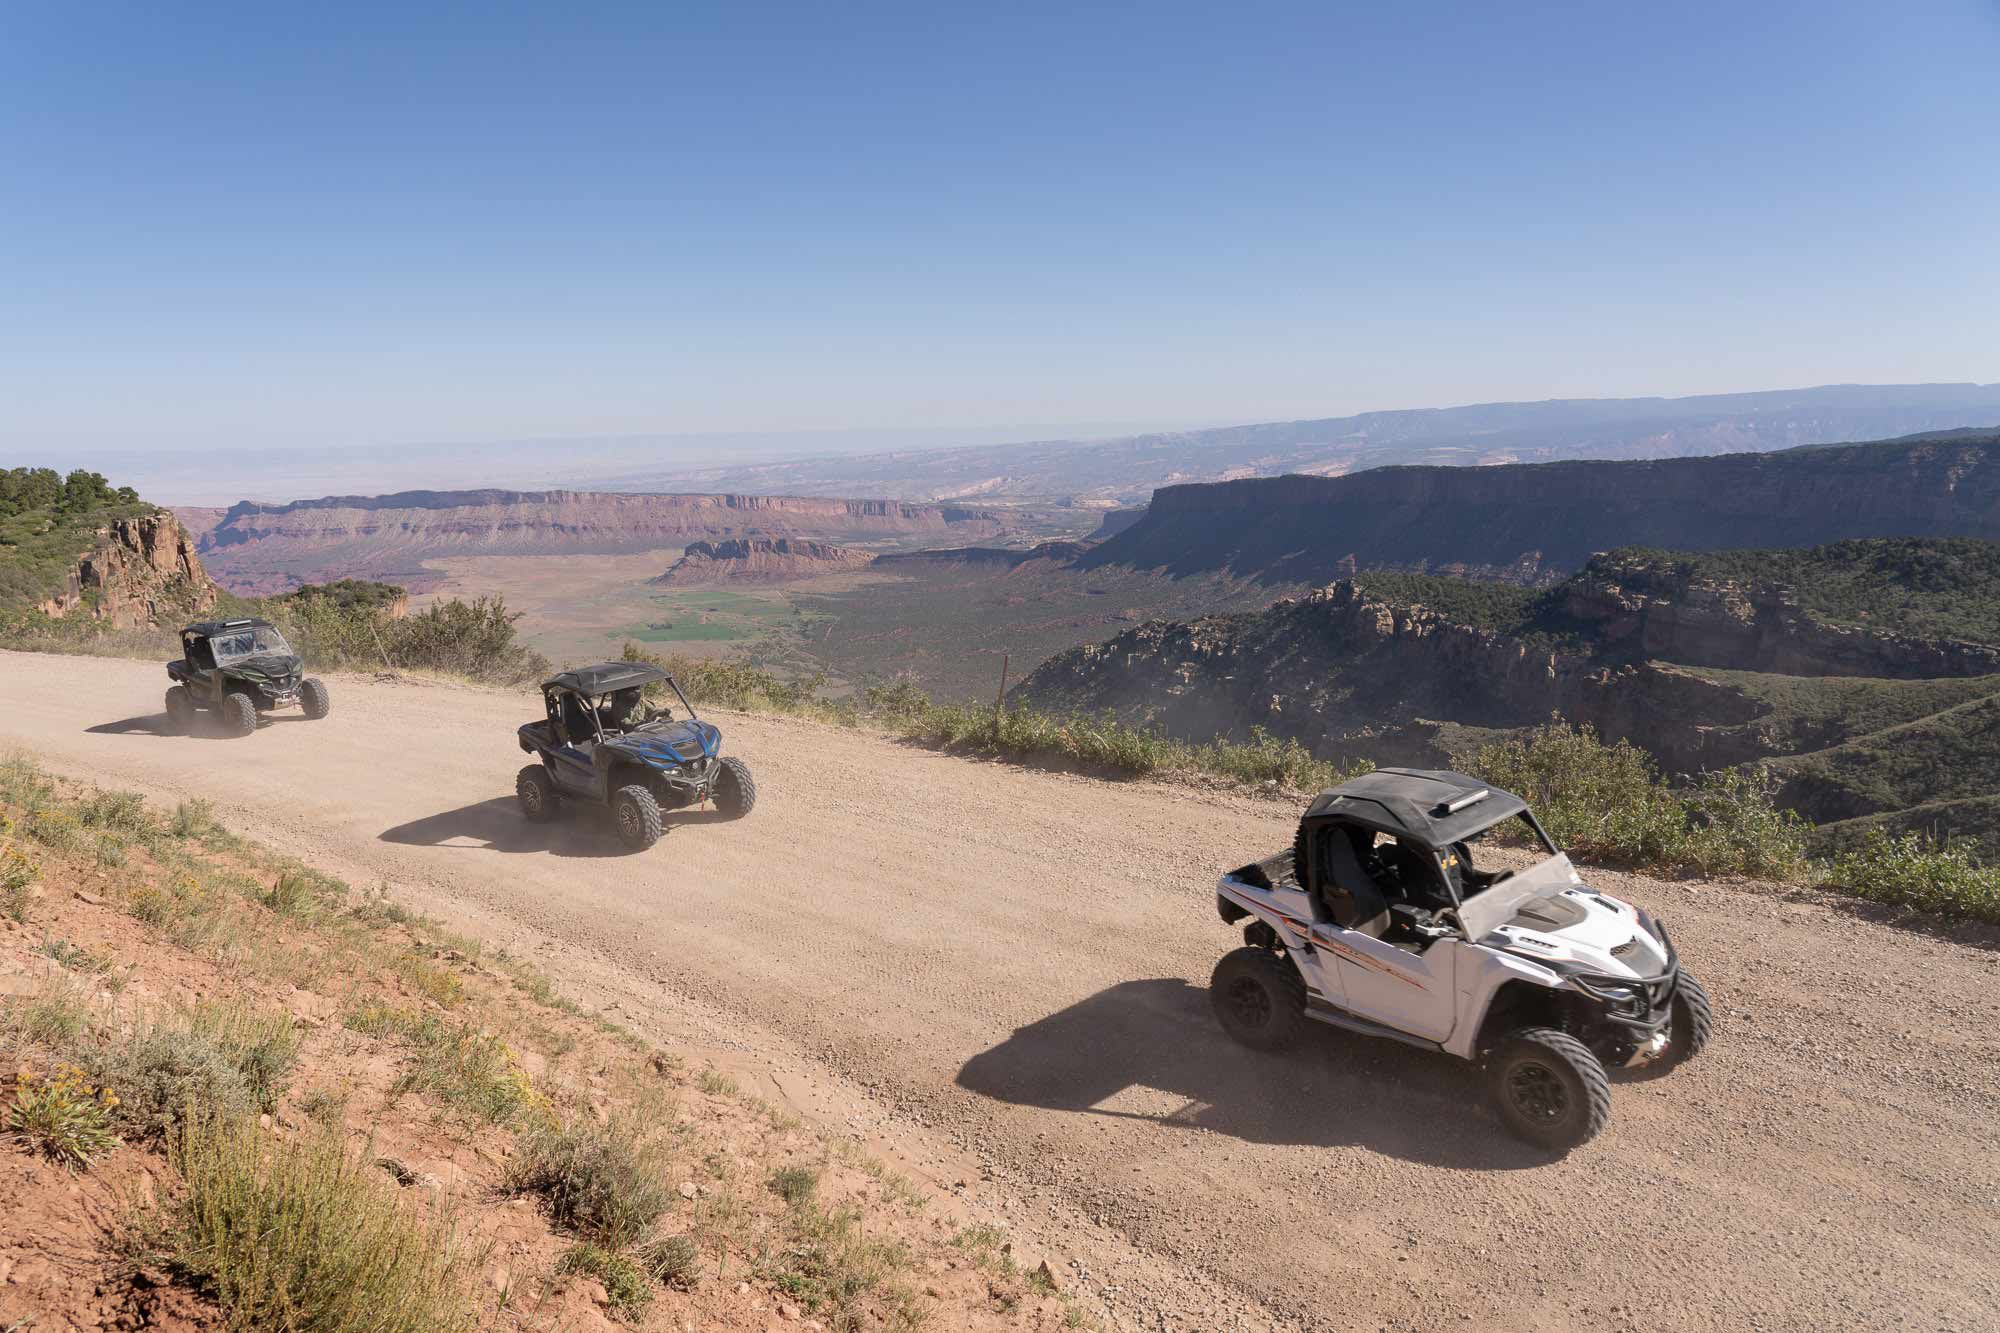 Dazzling vistas in every direction overwhelm the senses while exploring eastern Utah.